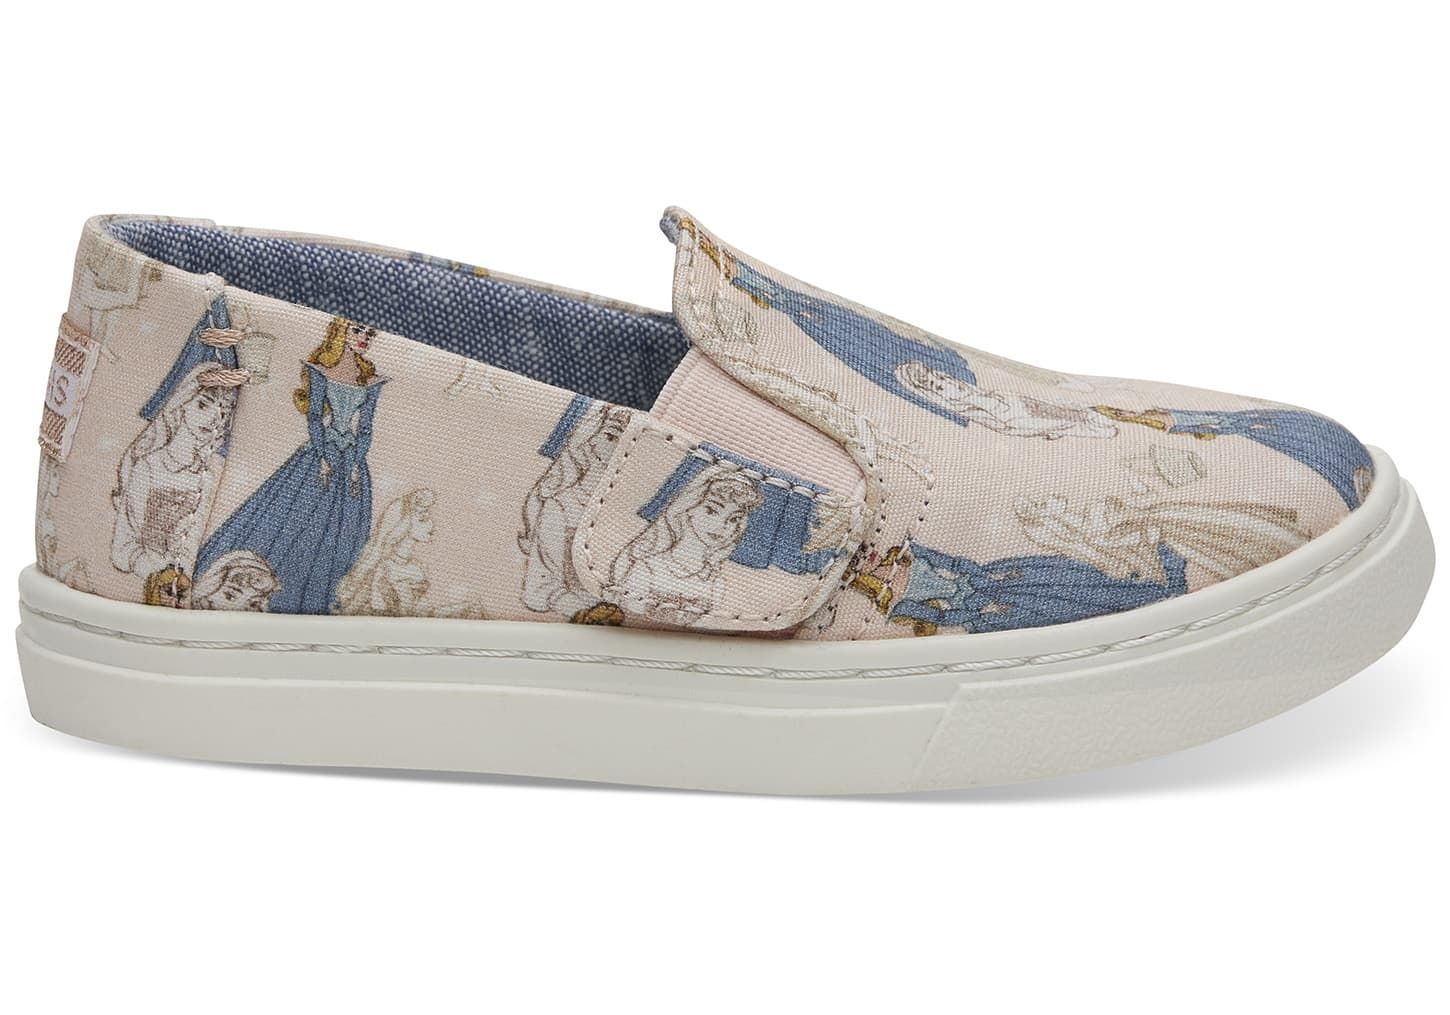 b150fea19f263 Disney X TOMS Pink Sleeping Beauty Tiny TOMS Luca Slip-Ons in 2019 ...